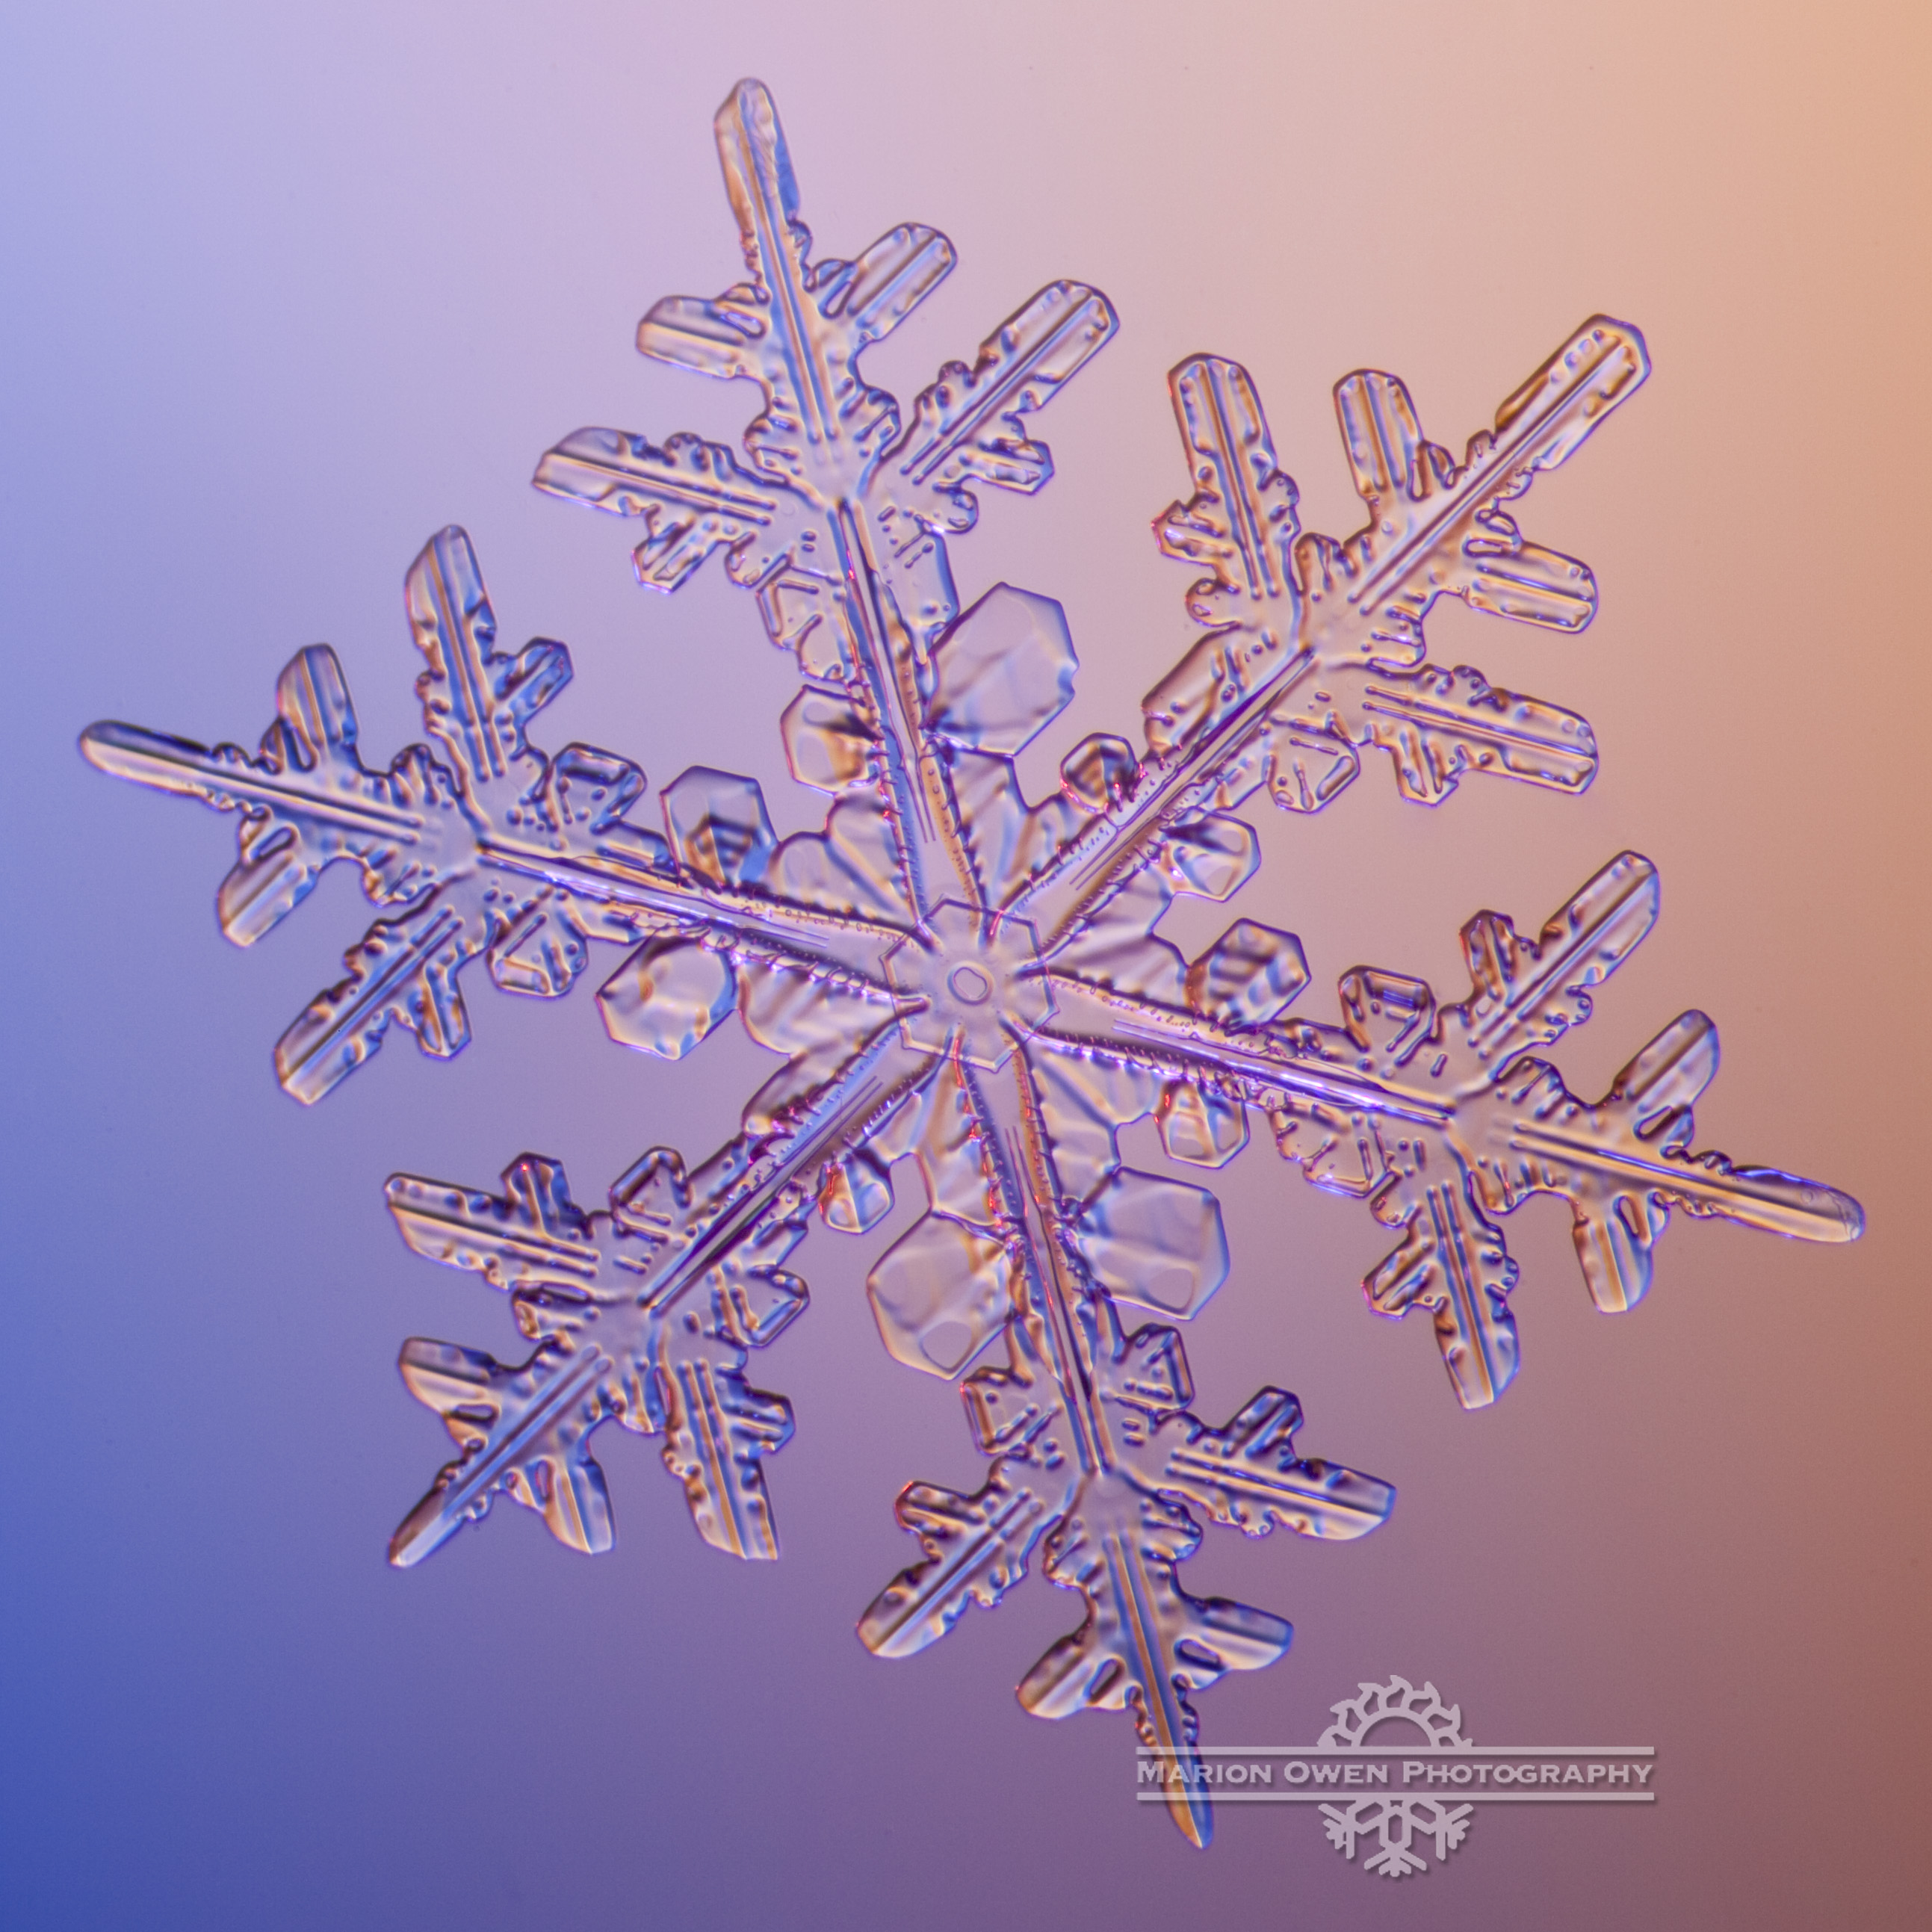 snowflakes pretty in pink lagniappe u003d a little bit extra